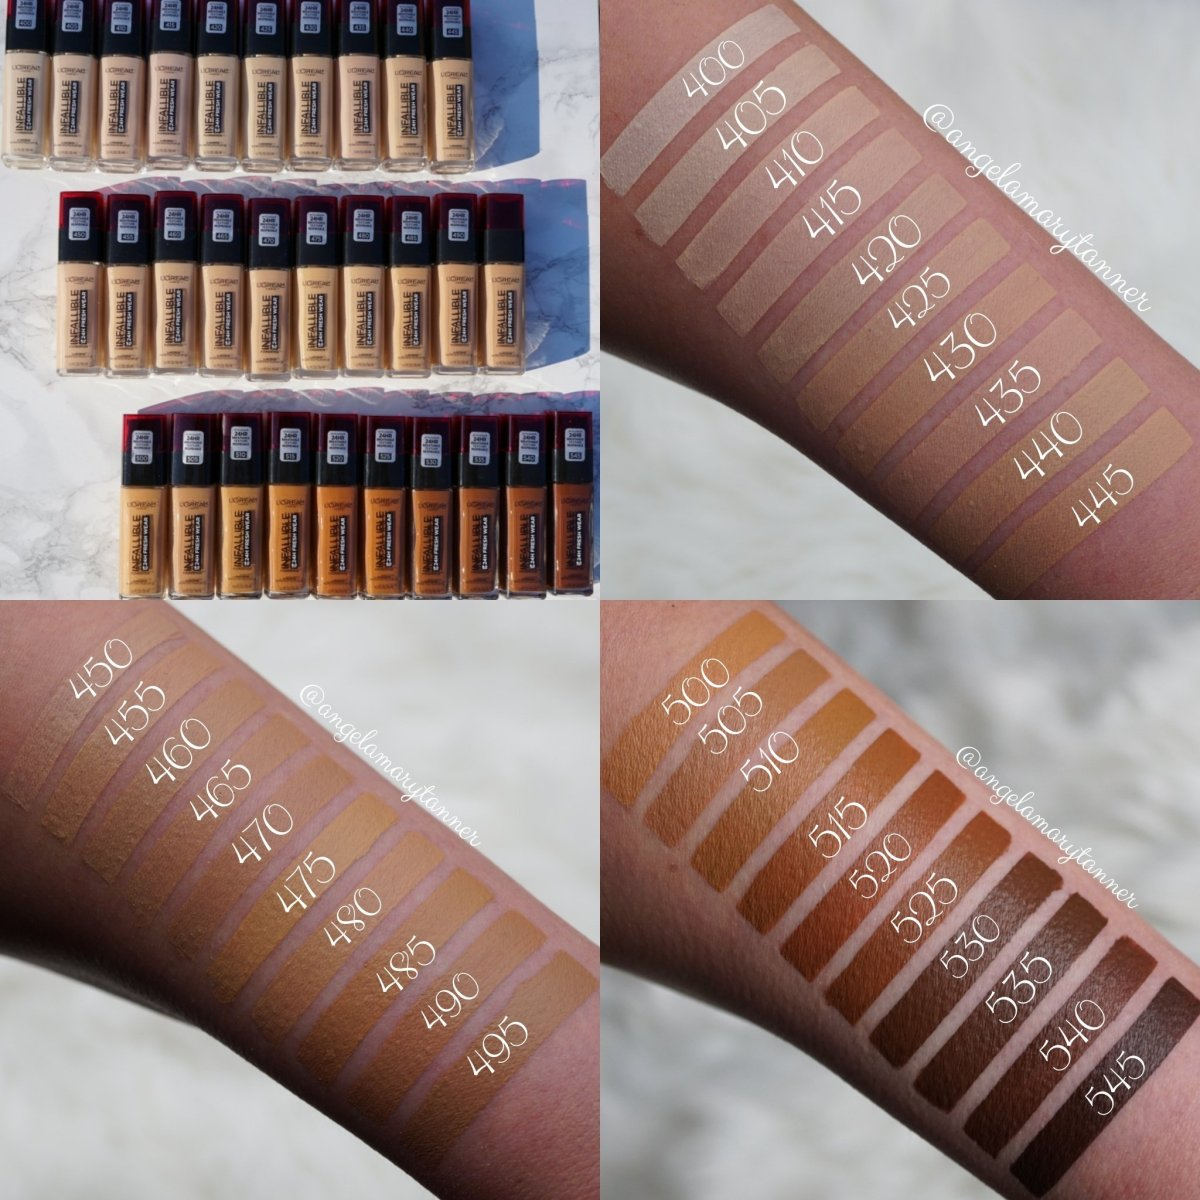 New L'Oreal Infallible Fresh Wear 24HR Foundation: Review and Swatches (All 30 shades)